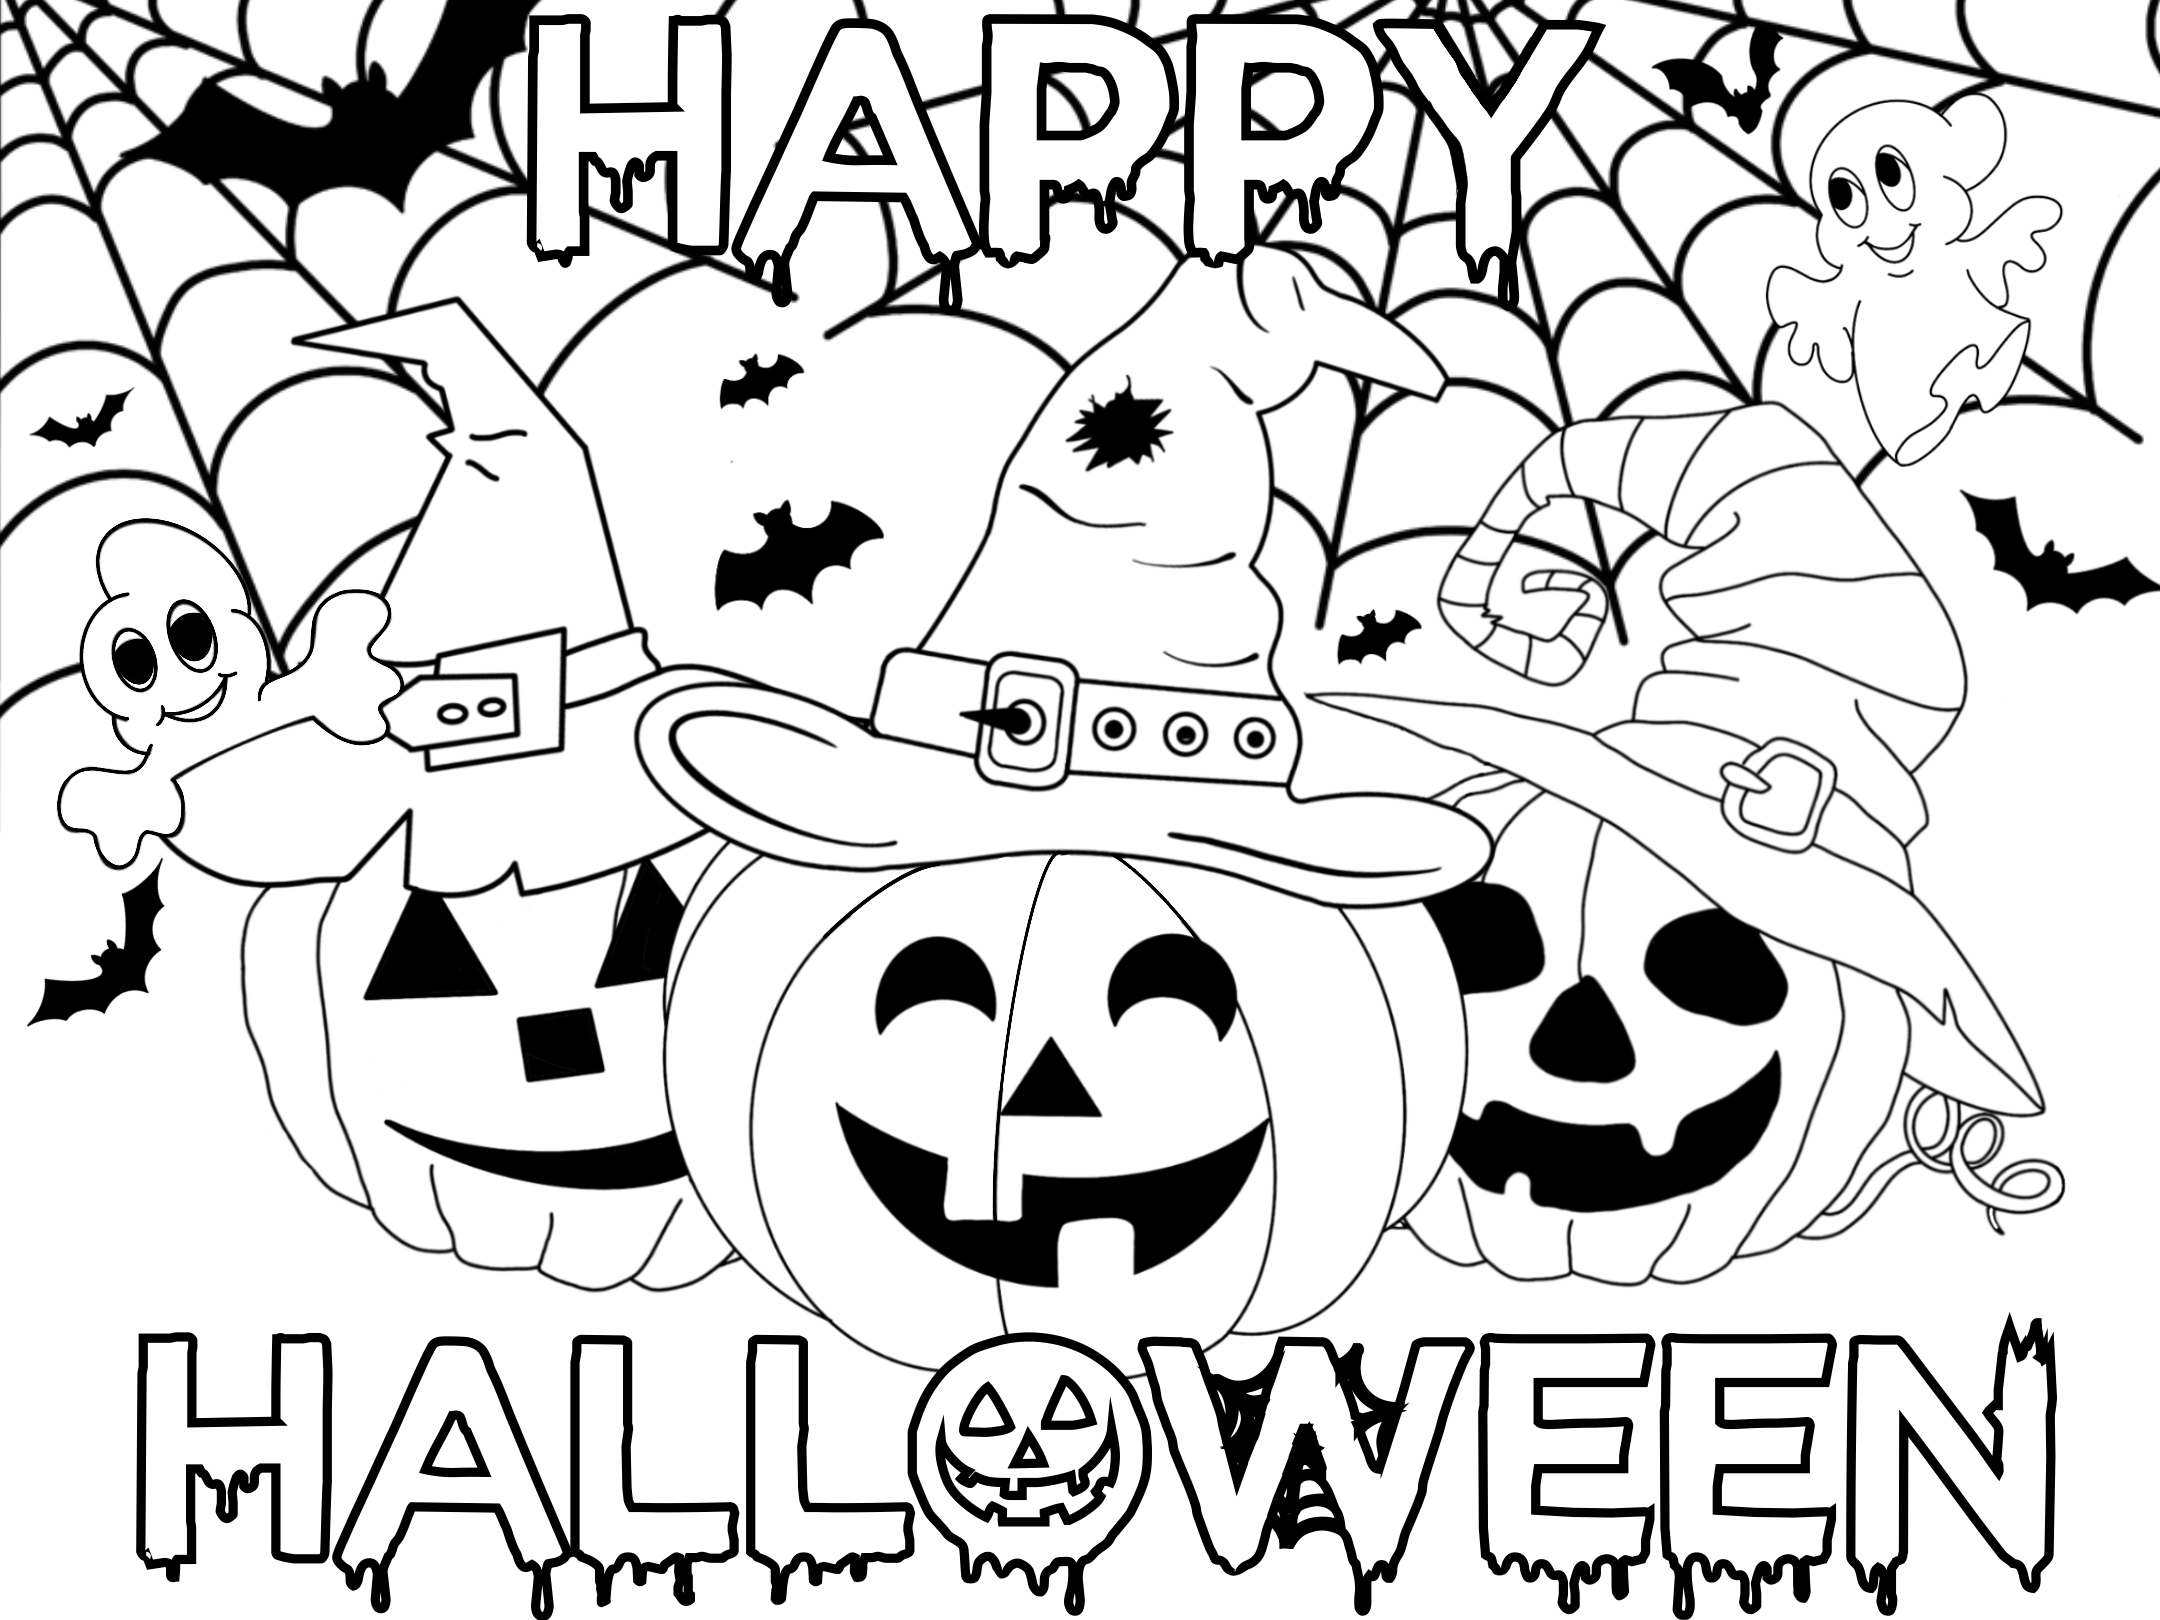 Second Colouring Sheet with pumpkins in witch's hats, spider webs, and bat